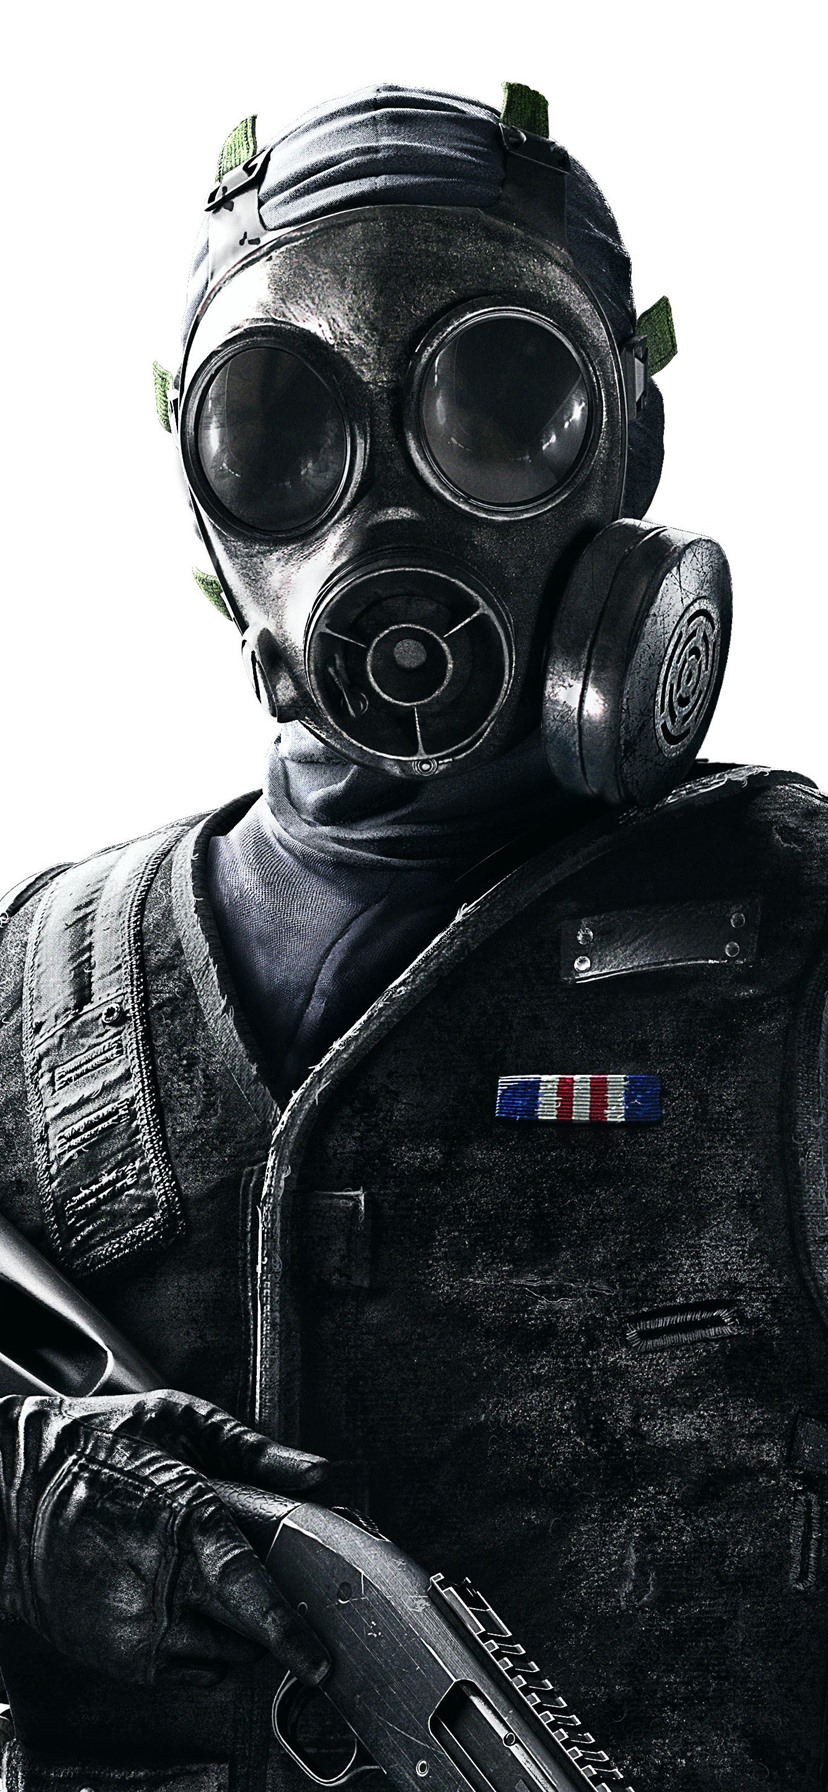 Wallpaper Rainbow Six Siege Soldier Gas Mask 3840x2160 Uhd 4k Picture Image